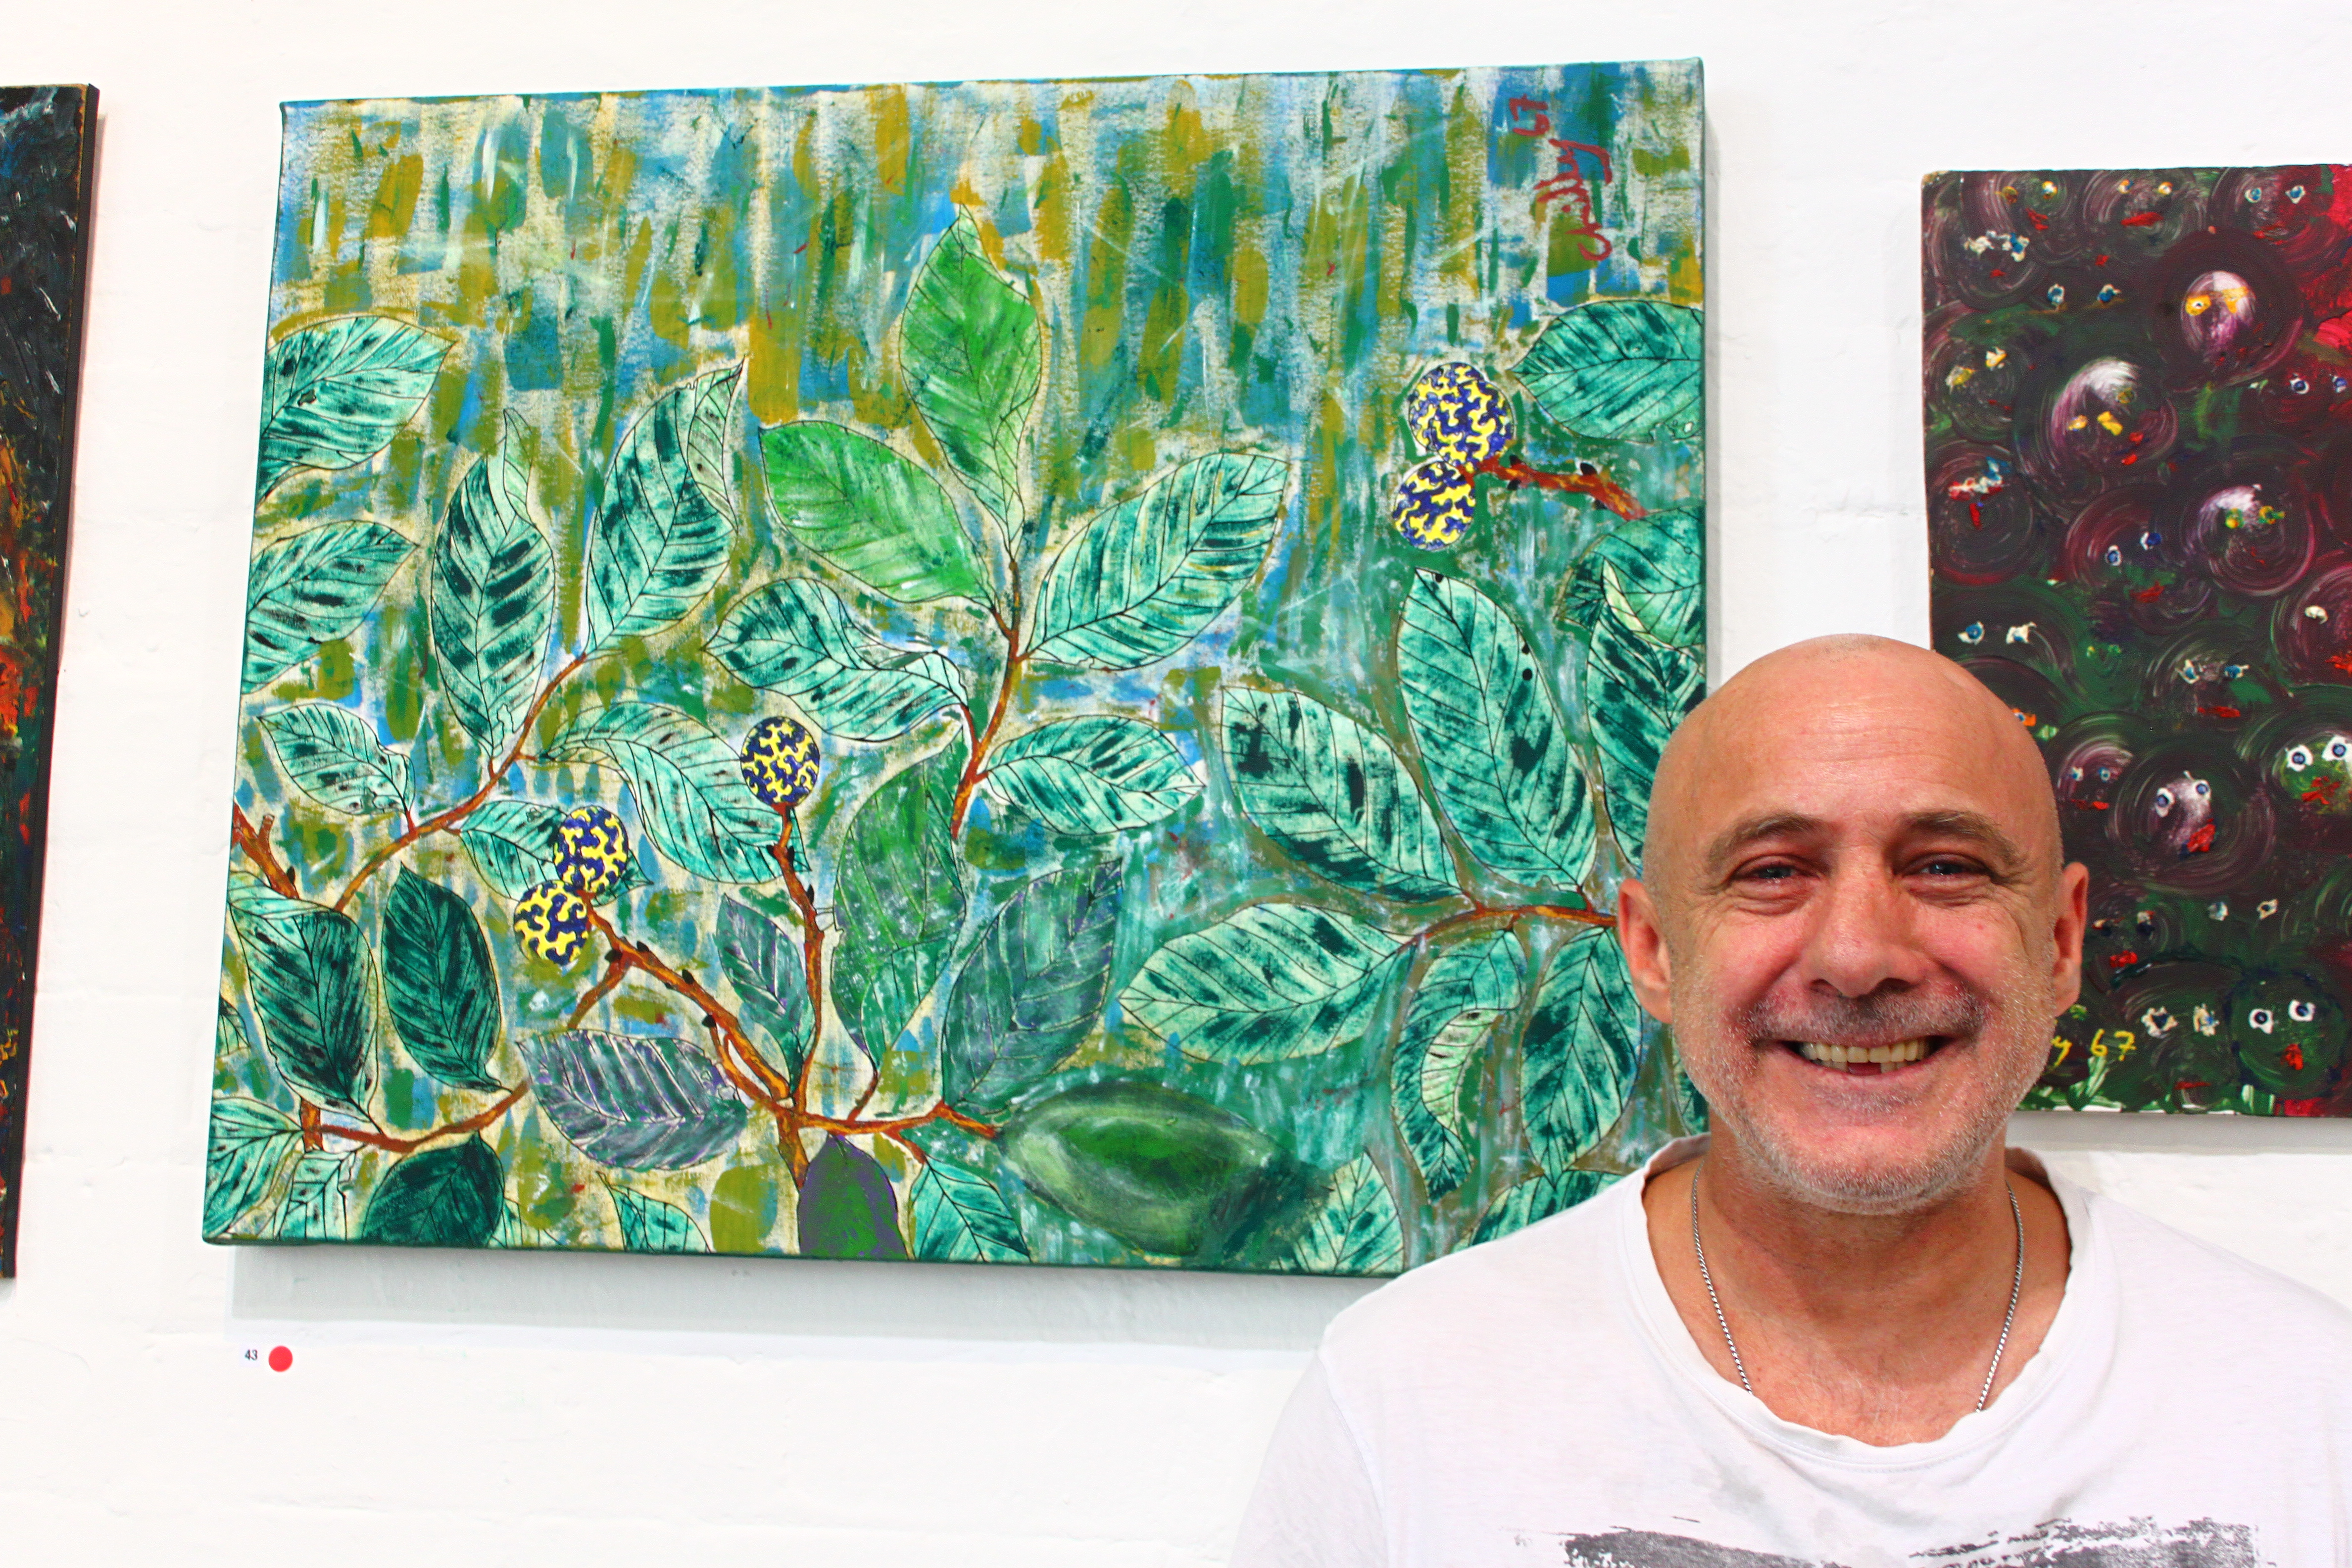 Danny Chilcott picked up a paint brush almost by accident, but its paying dividends. PIC: Supplied